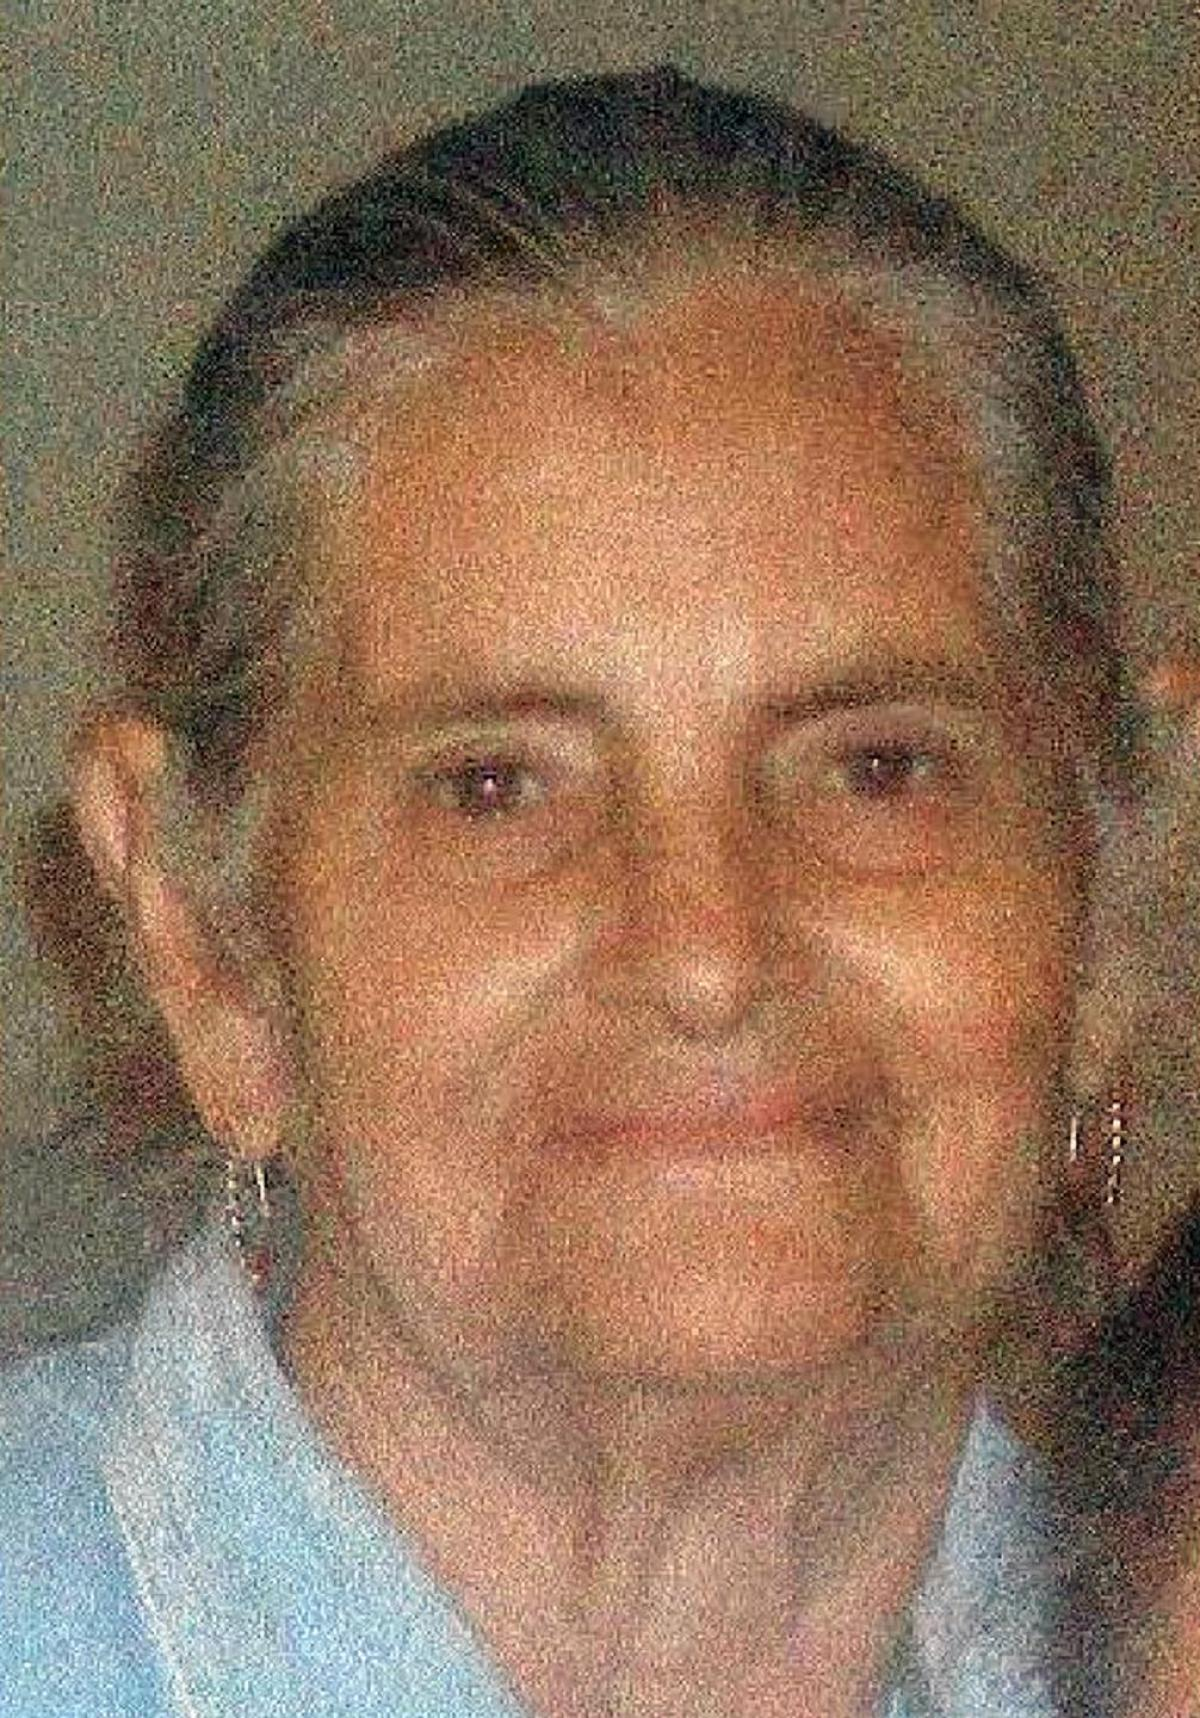 Maria De Jesus Arroyo, 80, was prematurely declared dead by a Los Angeles hospital following a 2010 heart attack. Court documents claim she woke up in a freezer and struggled to escape.